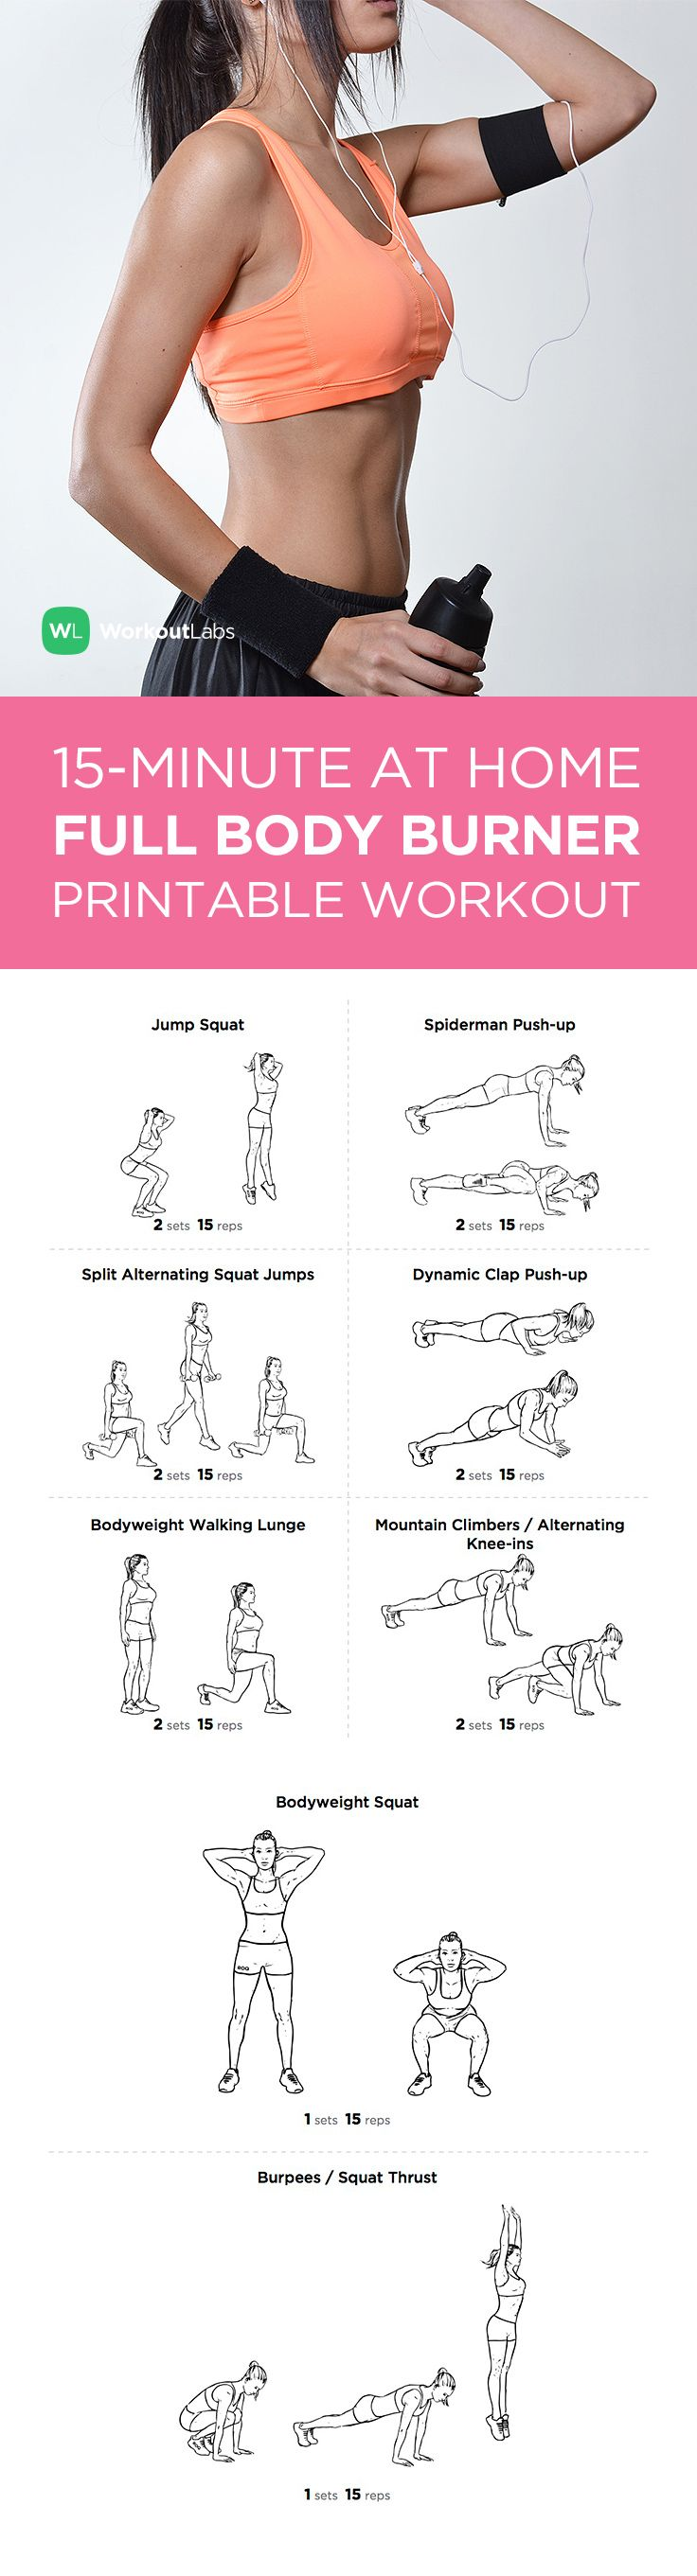 Visit http://WorkoutLabs.com/workout-plans/15-minute-full-body-burner-at-home-workout-for-men-women/ for a FREE PDF of this 15-Minute Full Body Burner at Home Workout for Men